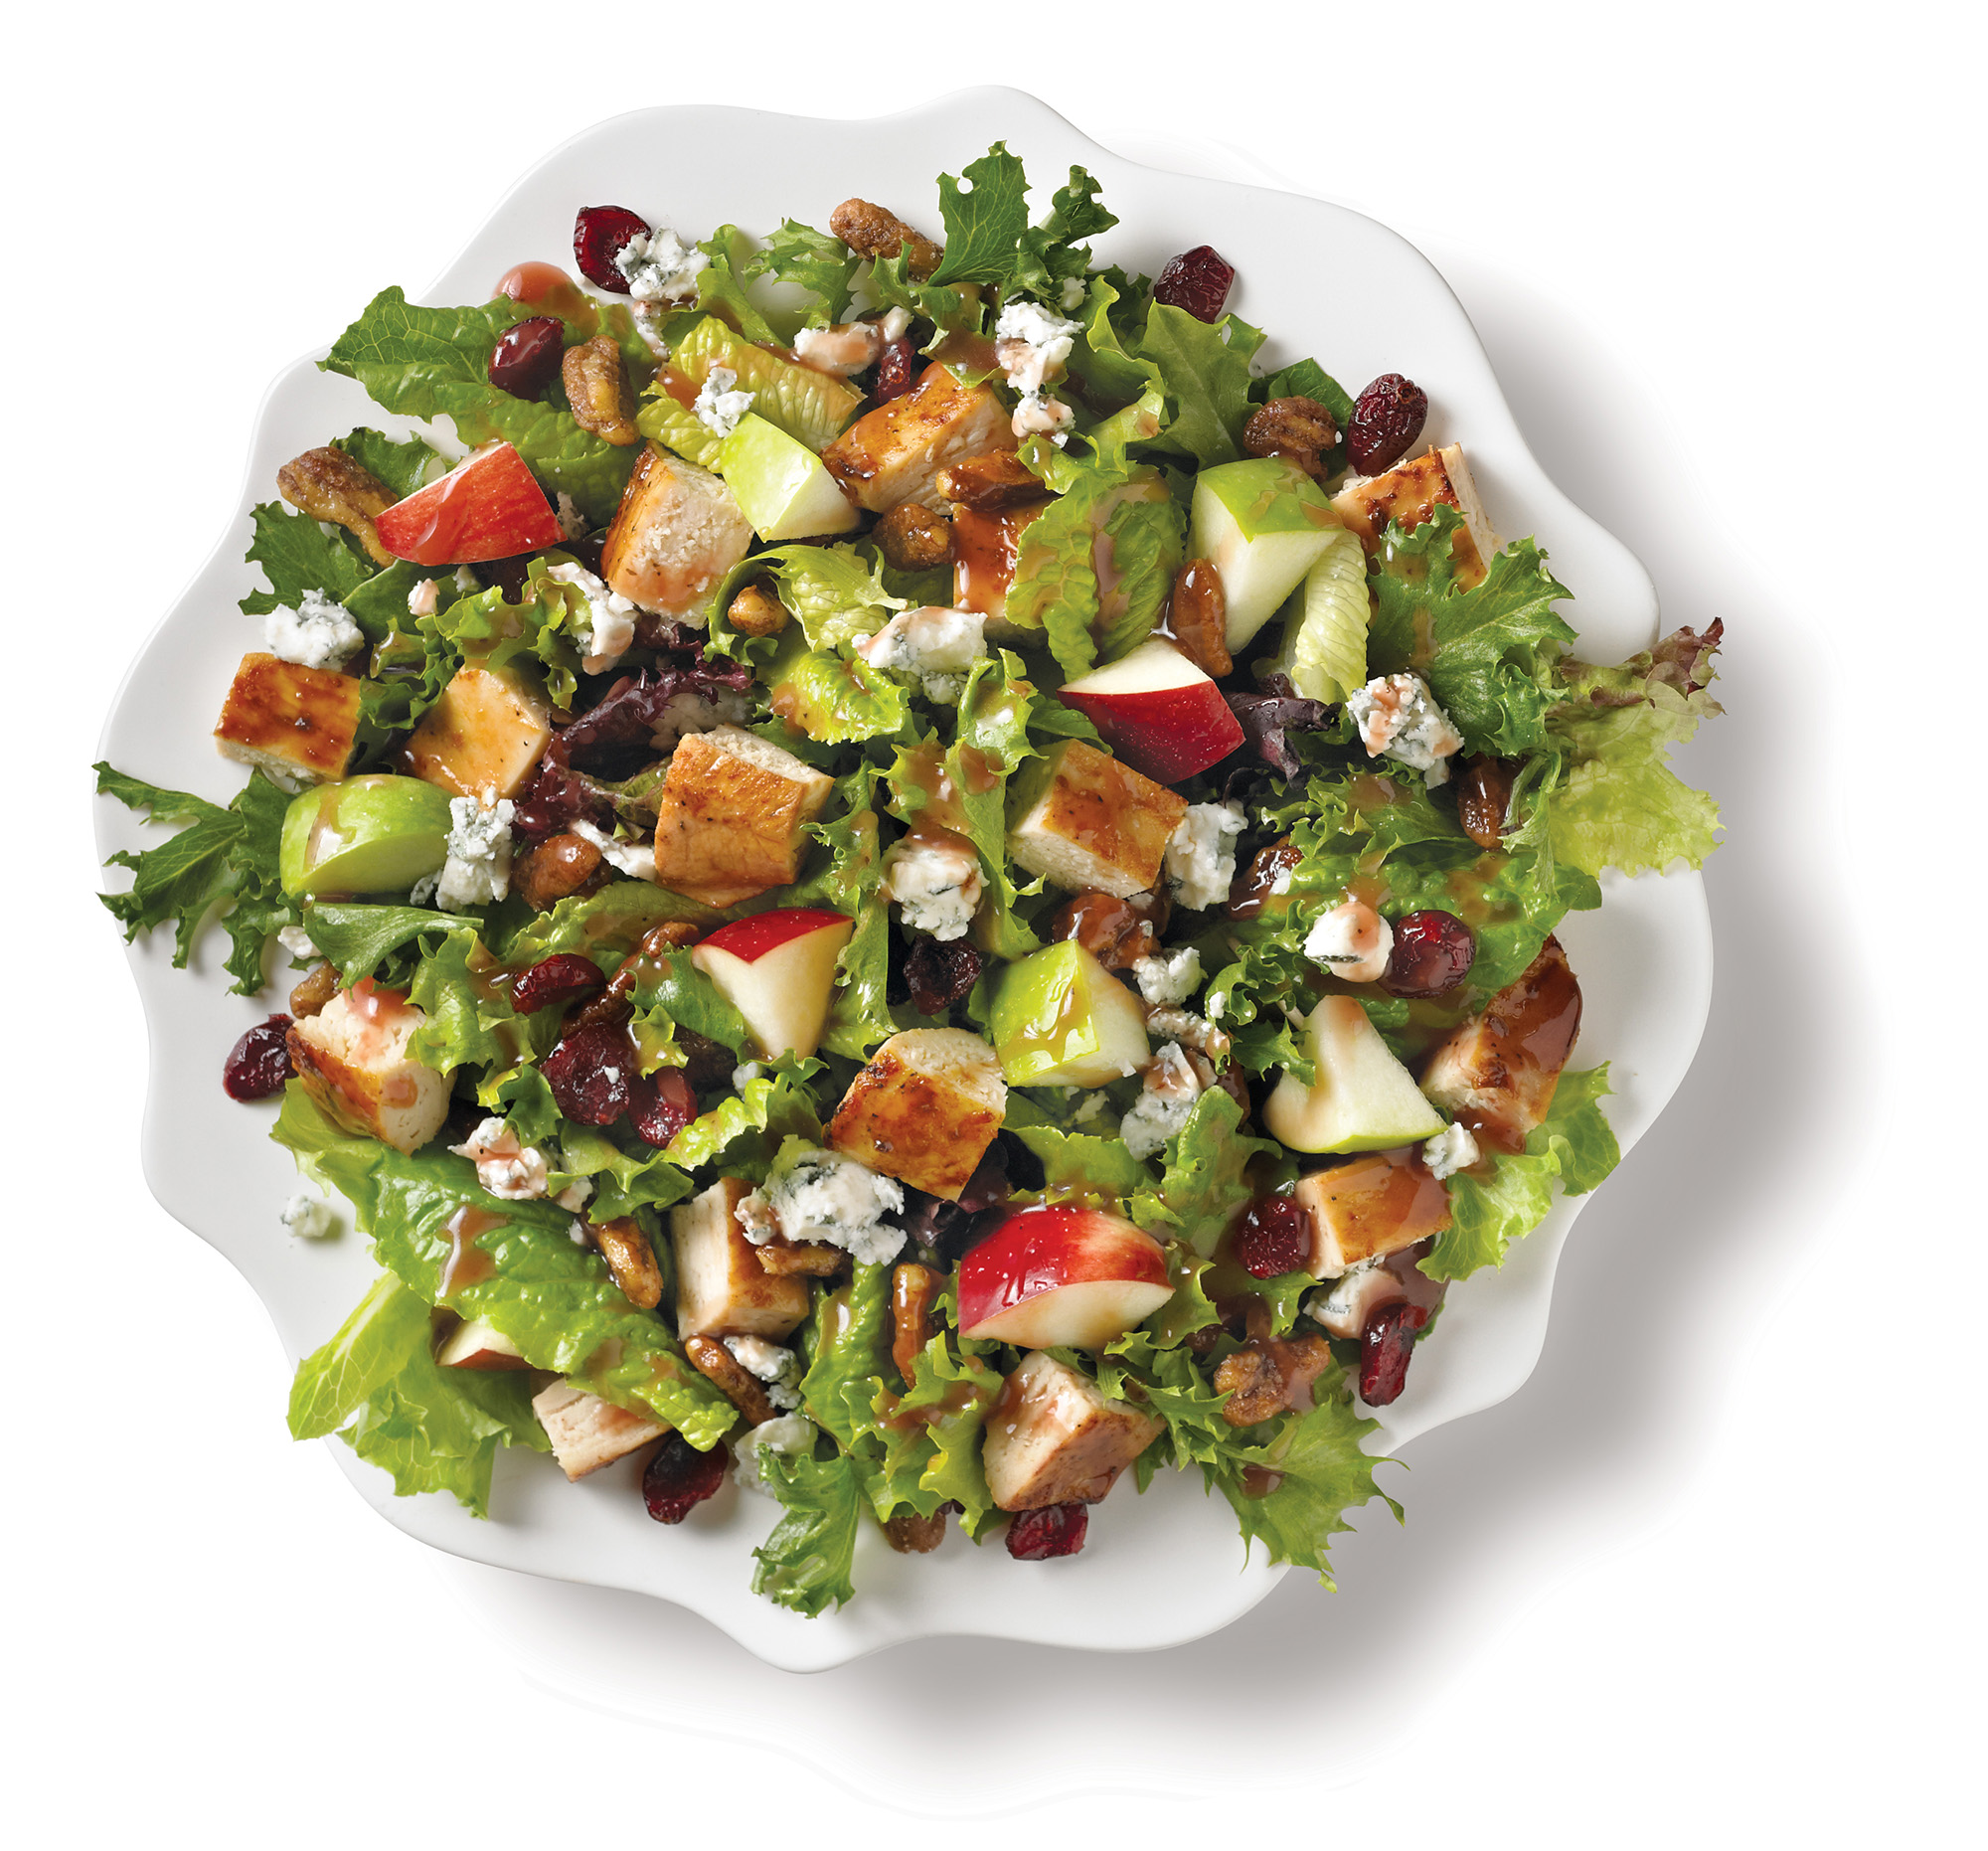 The Healthiest Meals to Order at Fast Food and Chain Restaurants